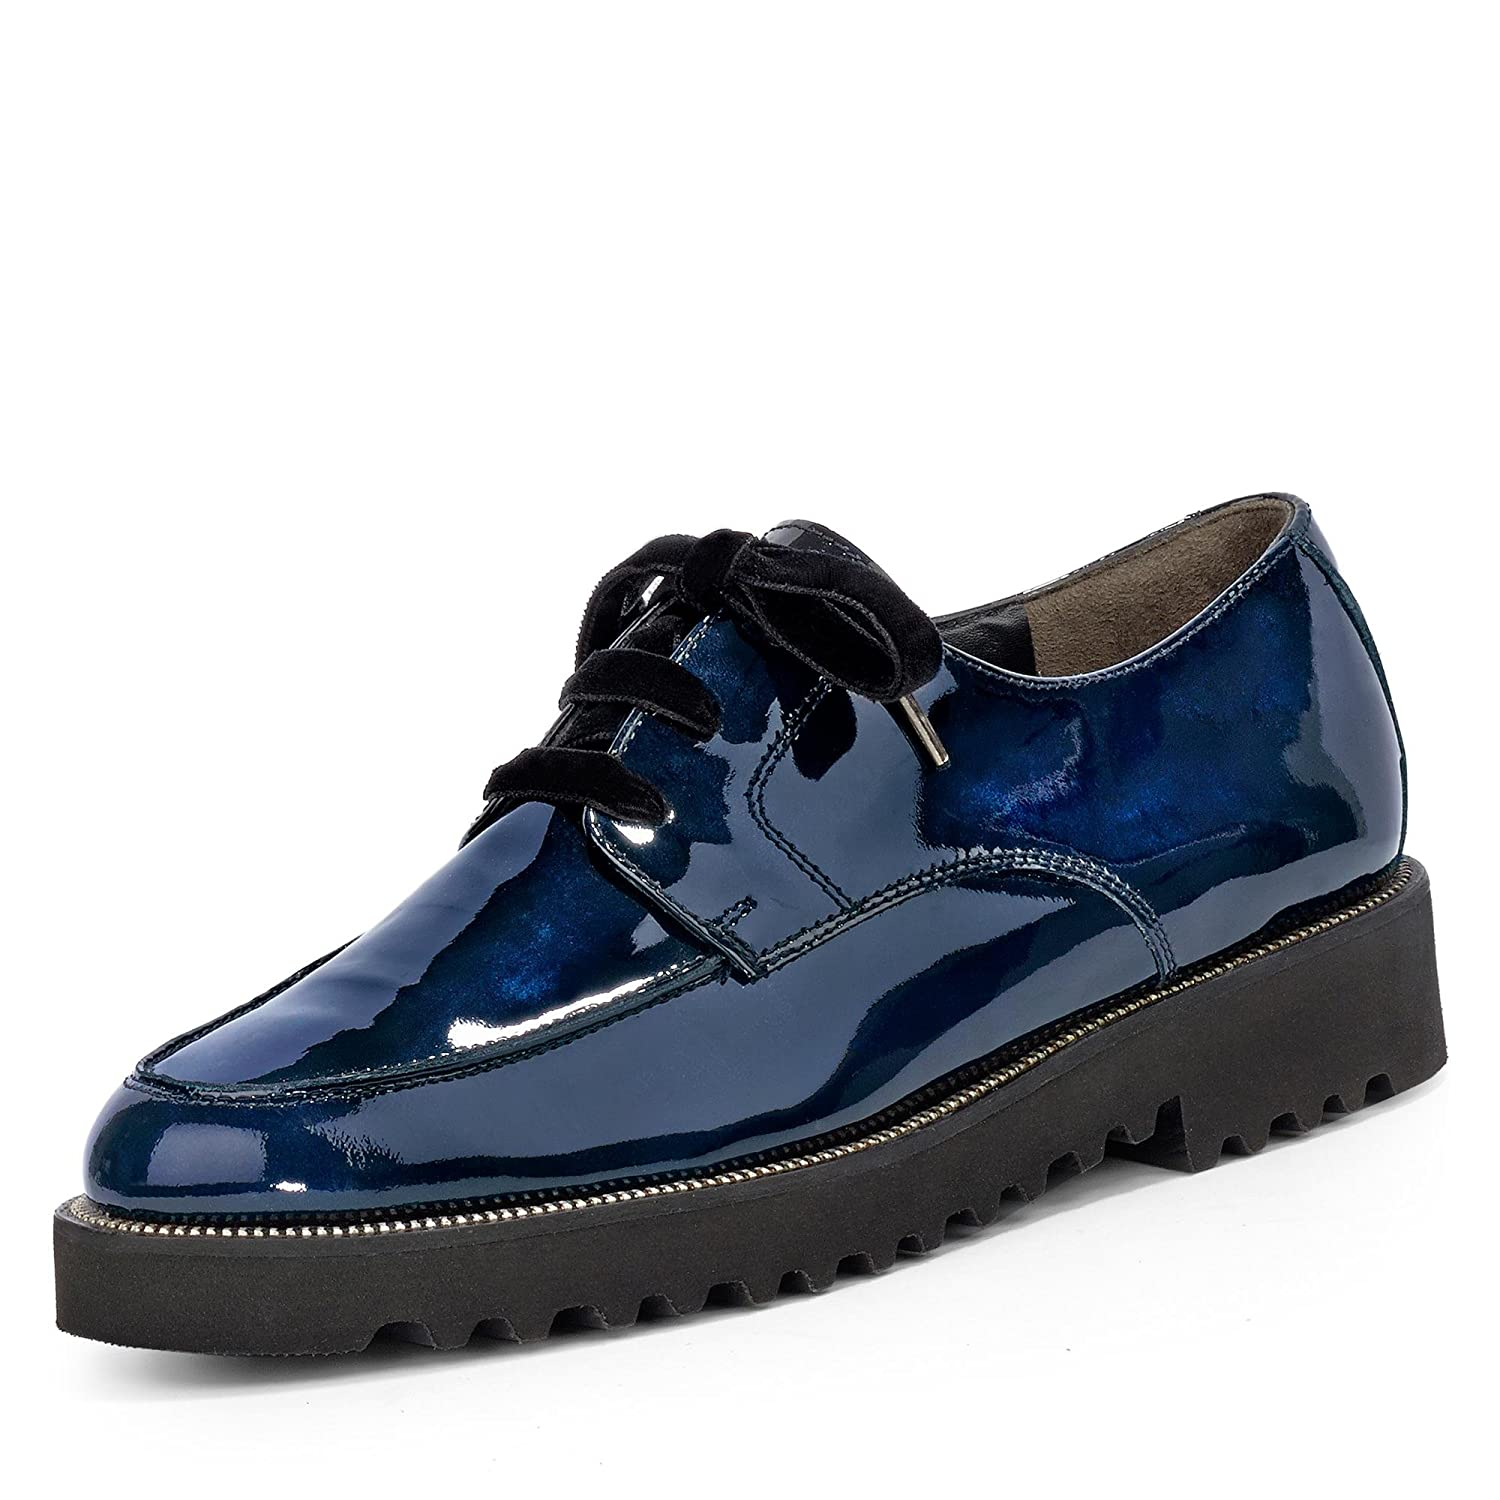 2629 LOAFER PAUL GREEN CHUNKY 2629 LOAFER Bleu acier acier e1624b4 - piero.space